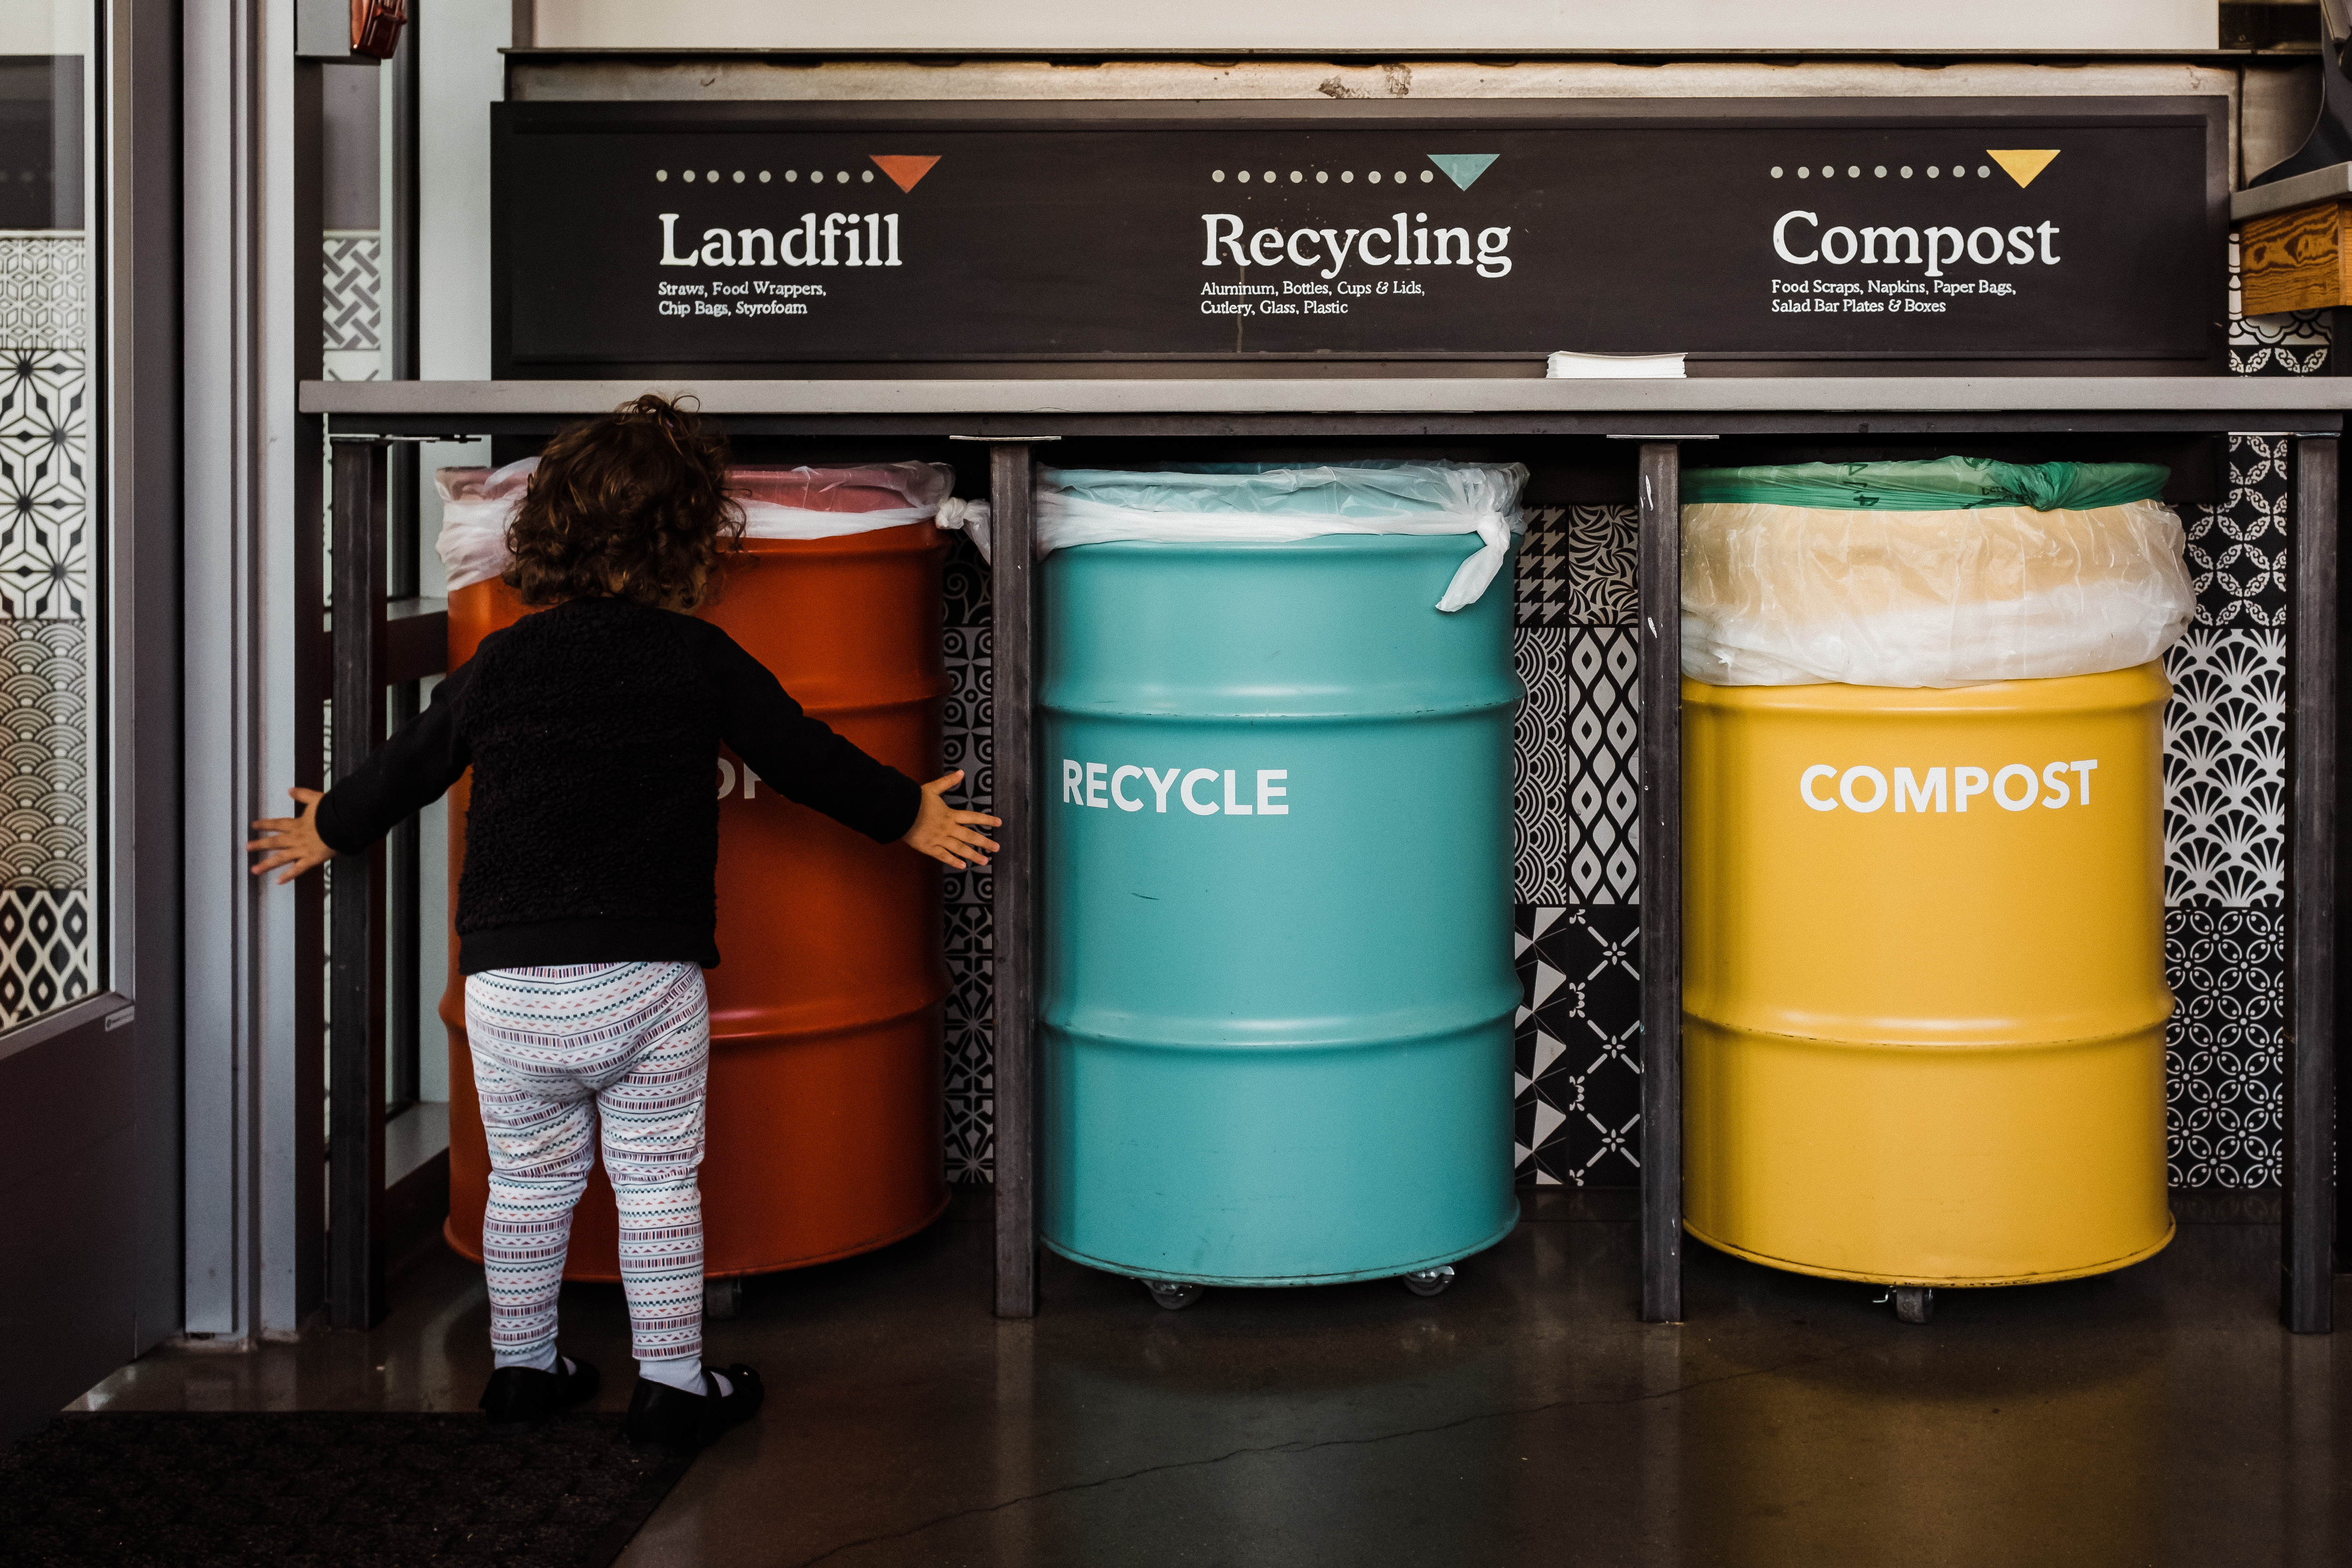 An image of three bins marked with: Landfill, Recycle, and Compost.